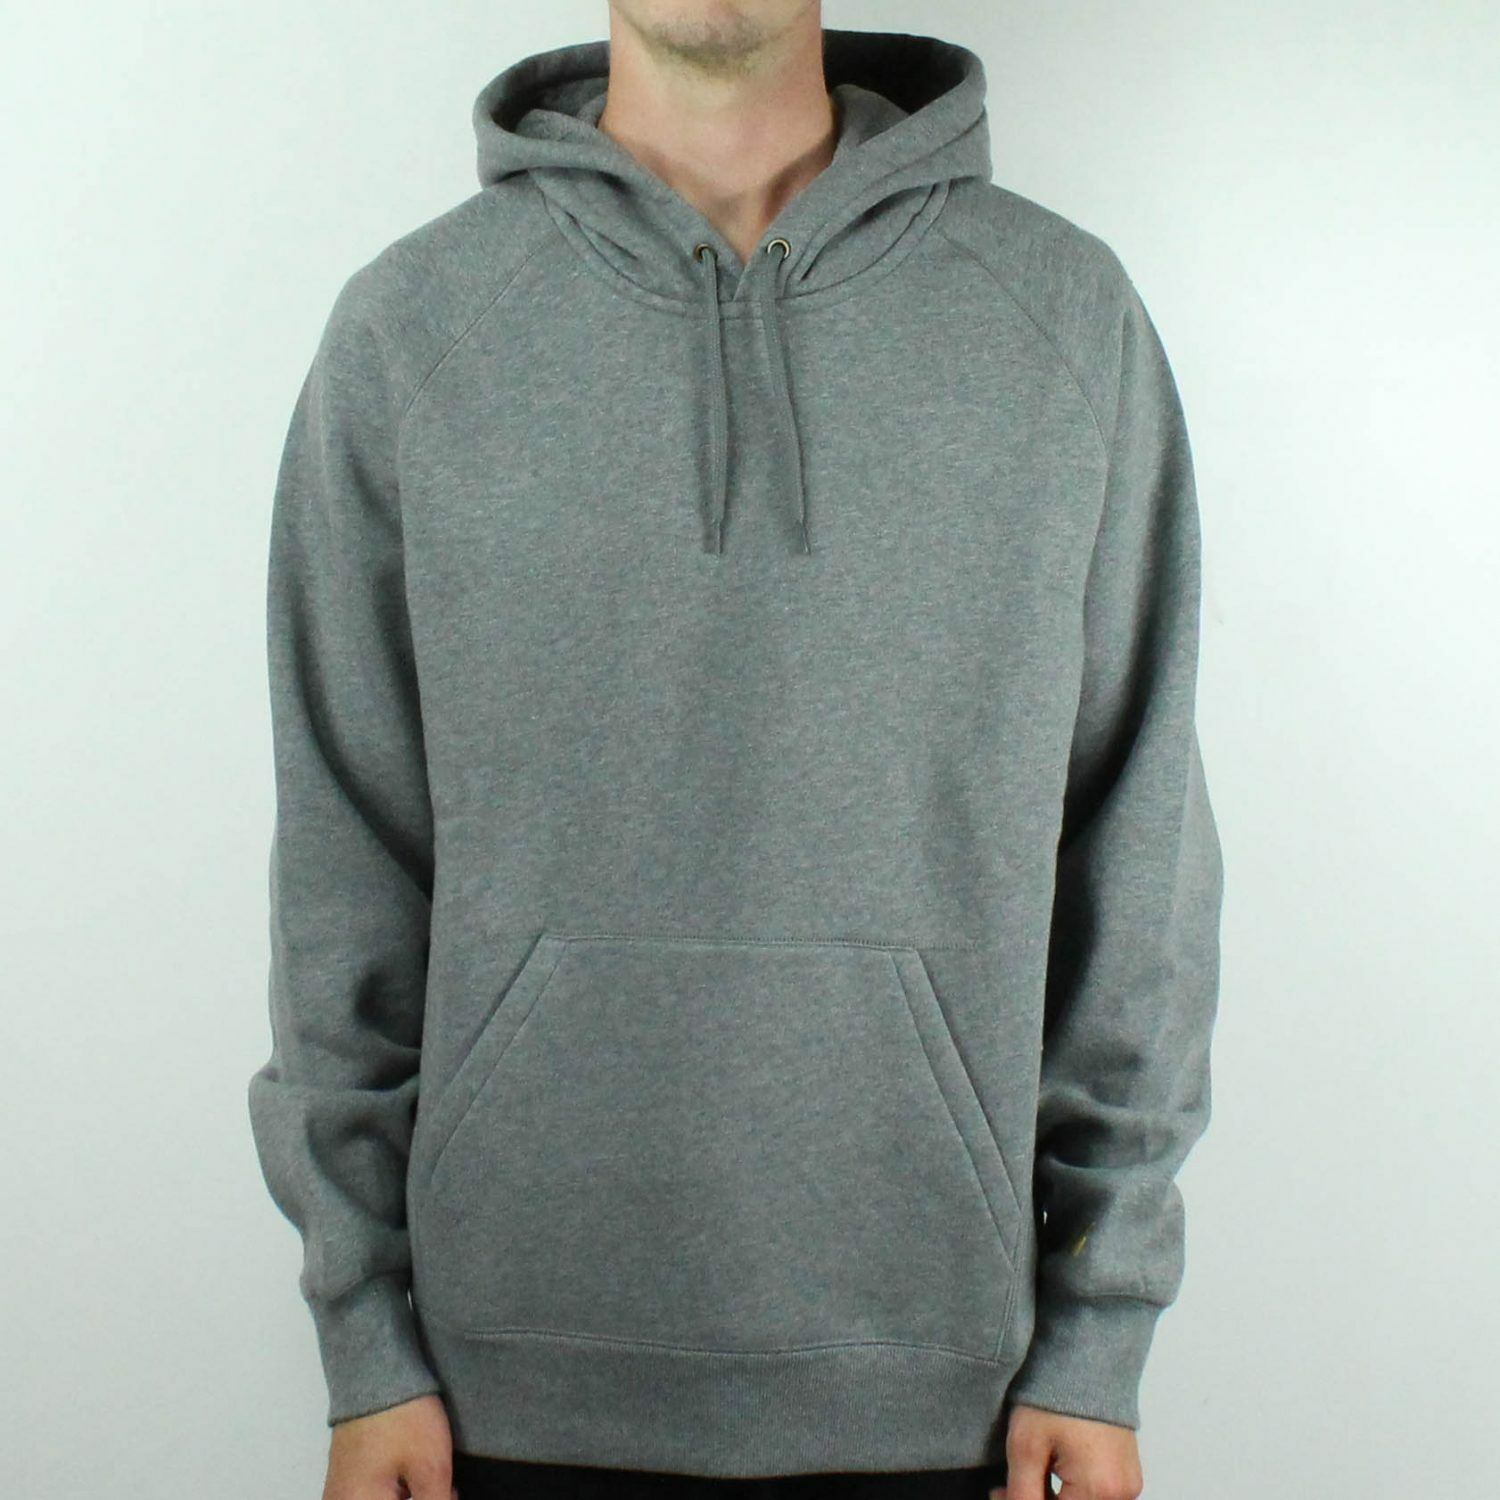 Carhartt Hooded Chase Sweatshirt Pullover in Dark Grau Brand New in S,M,L,XL